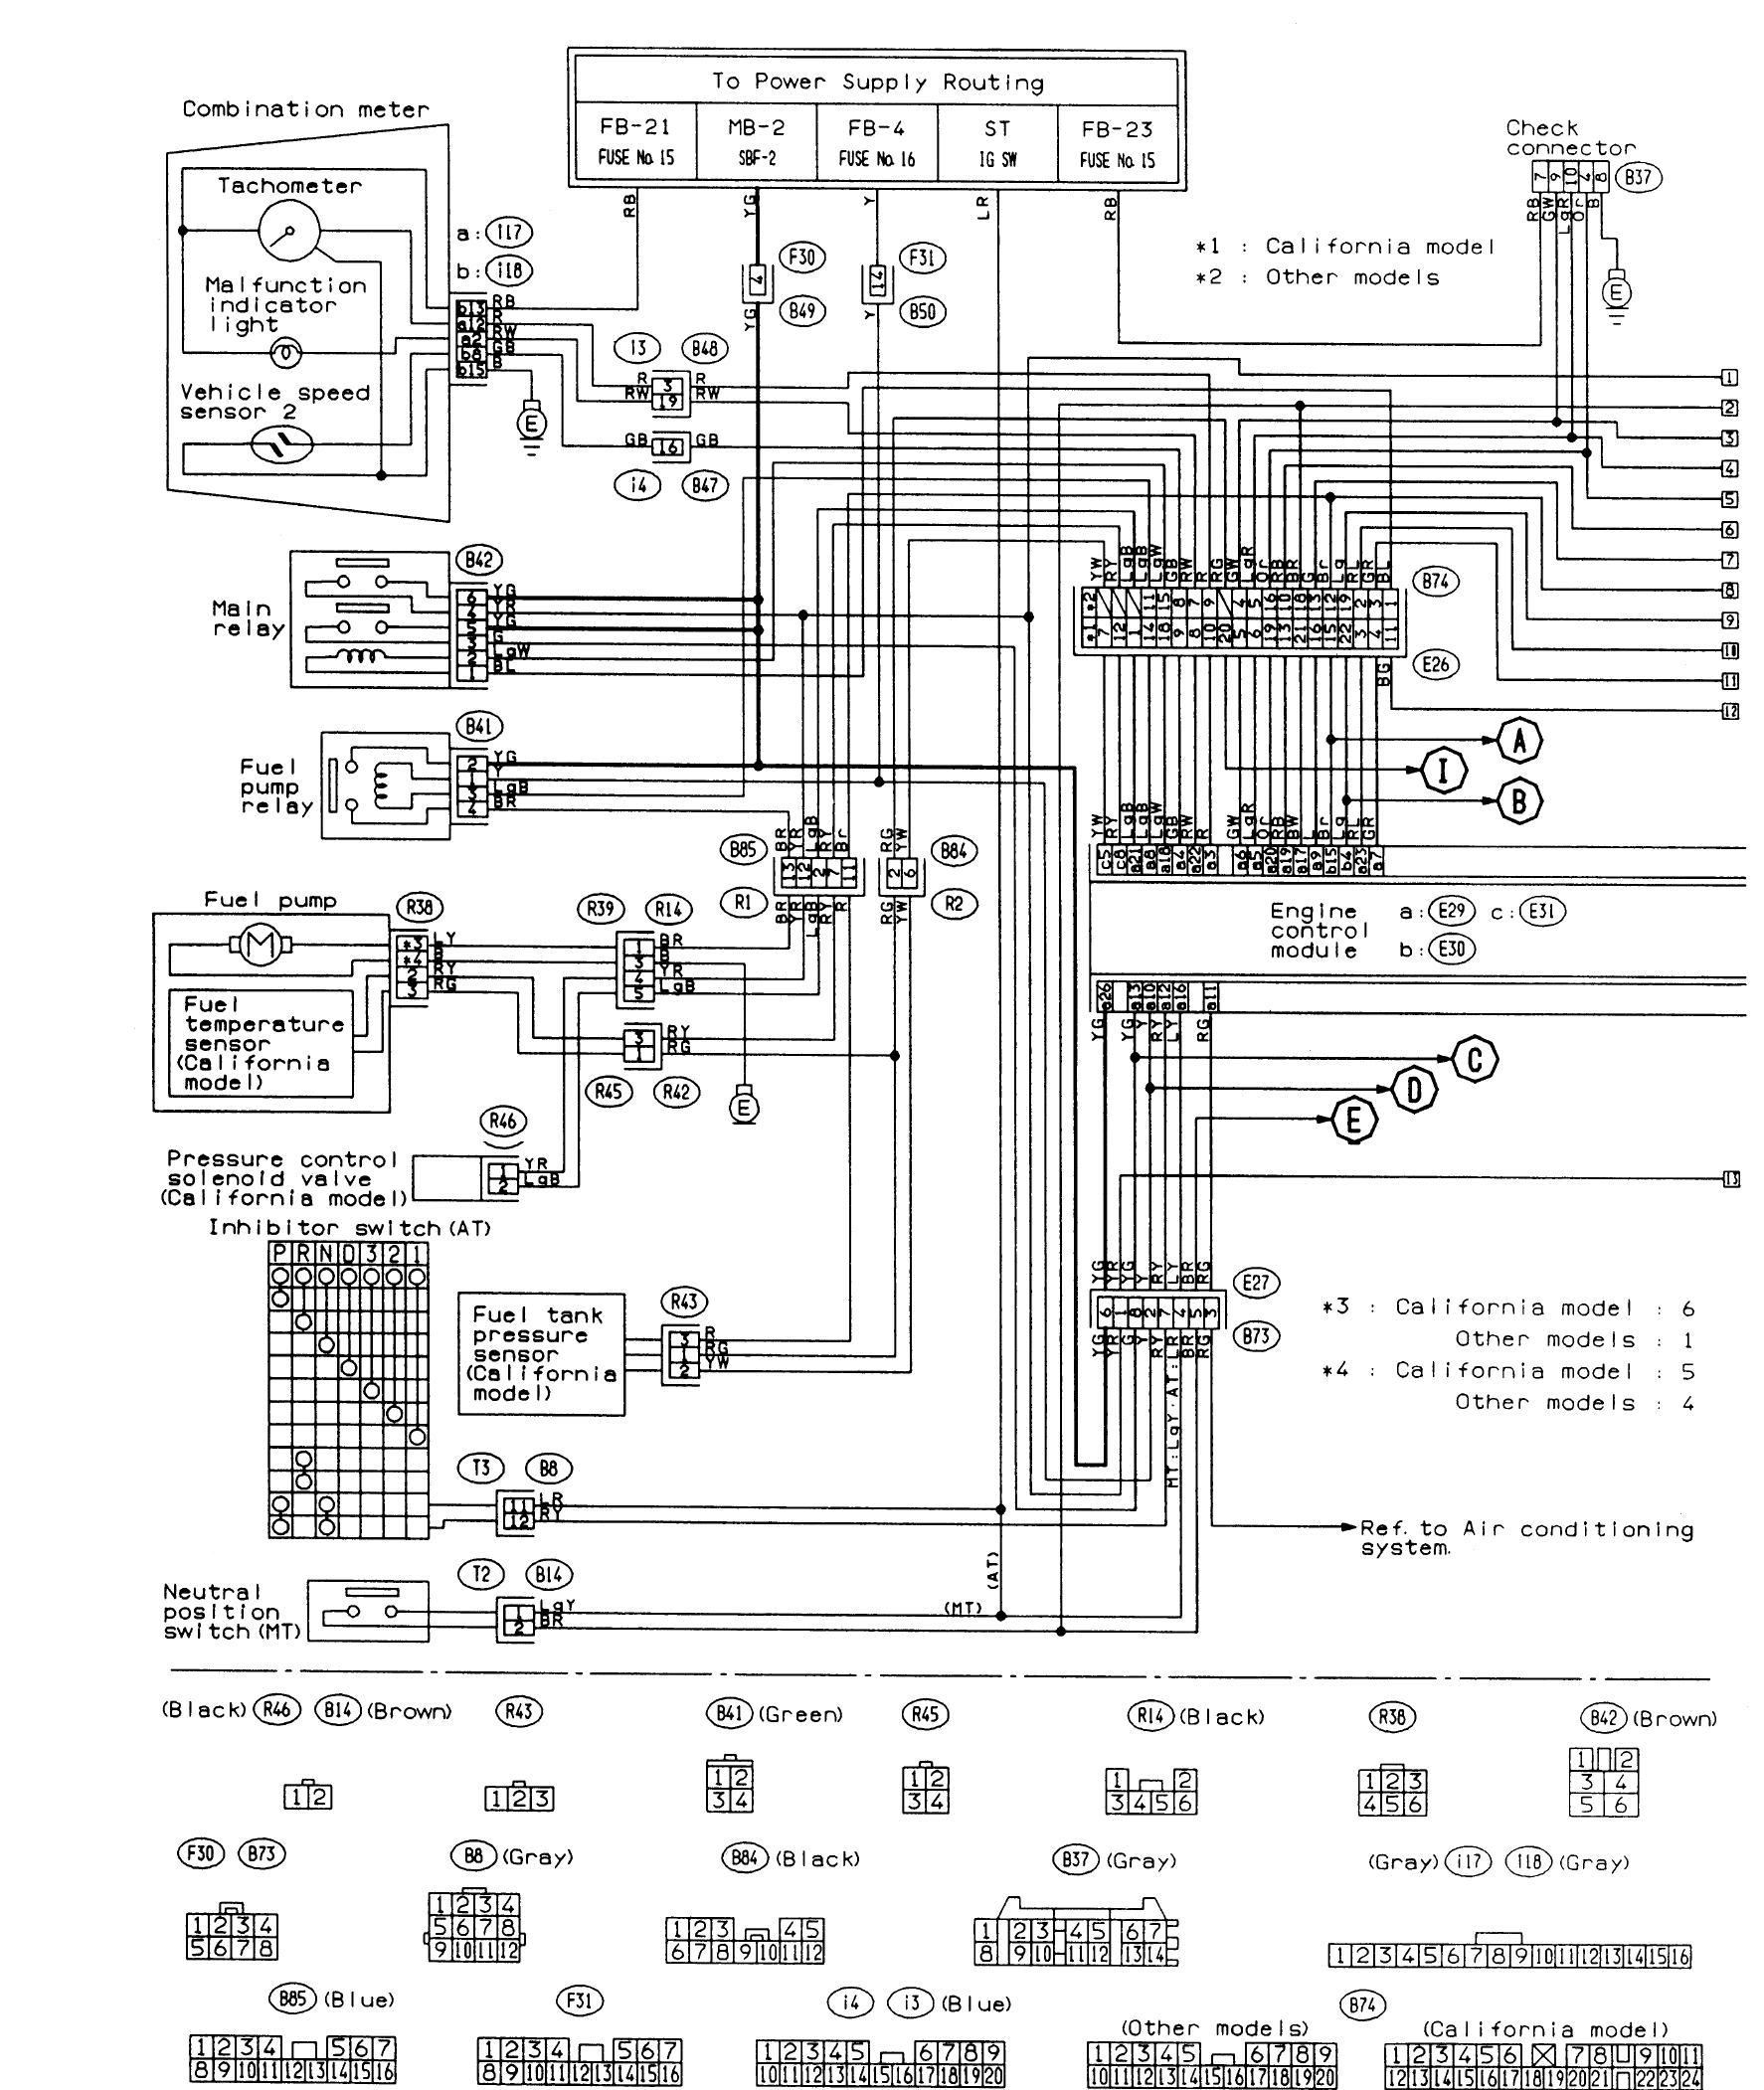 subaru ecu wiring diagram FUSlrCX wiring diagram for 2013 subaru outback radios readingrat net 2000 subaru outback wiring diagram at alyssarenee.co